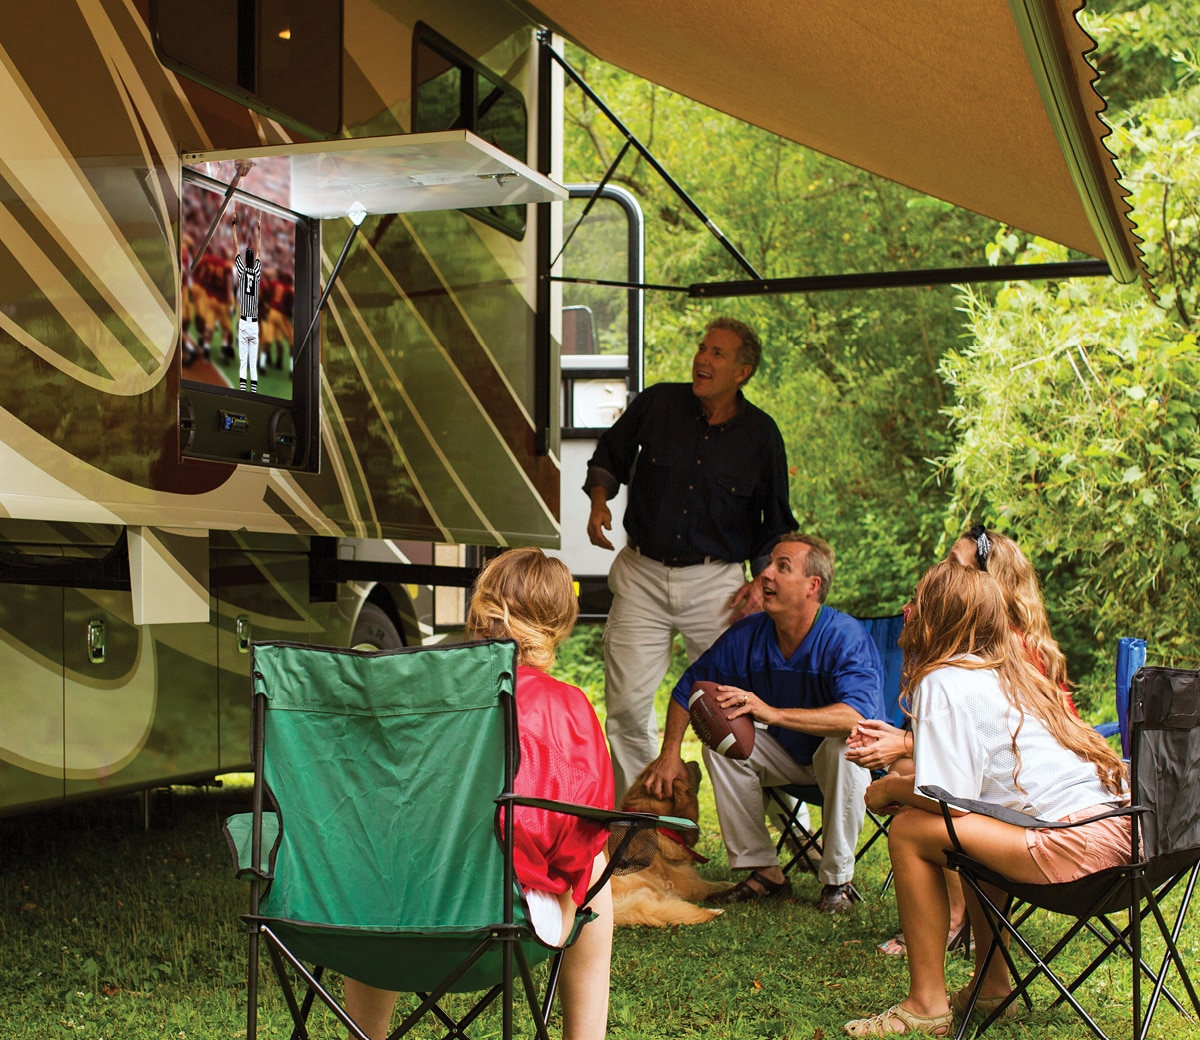 Tips For Getting TV Reception In Your RV